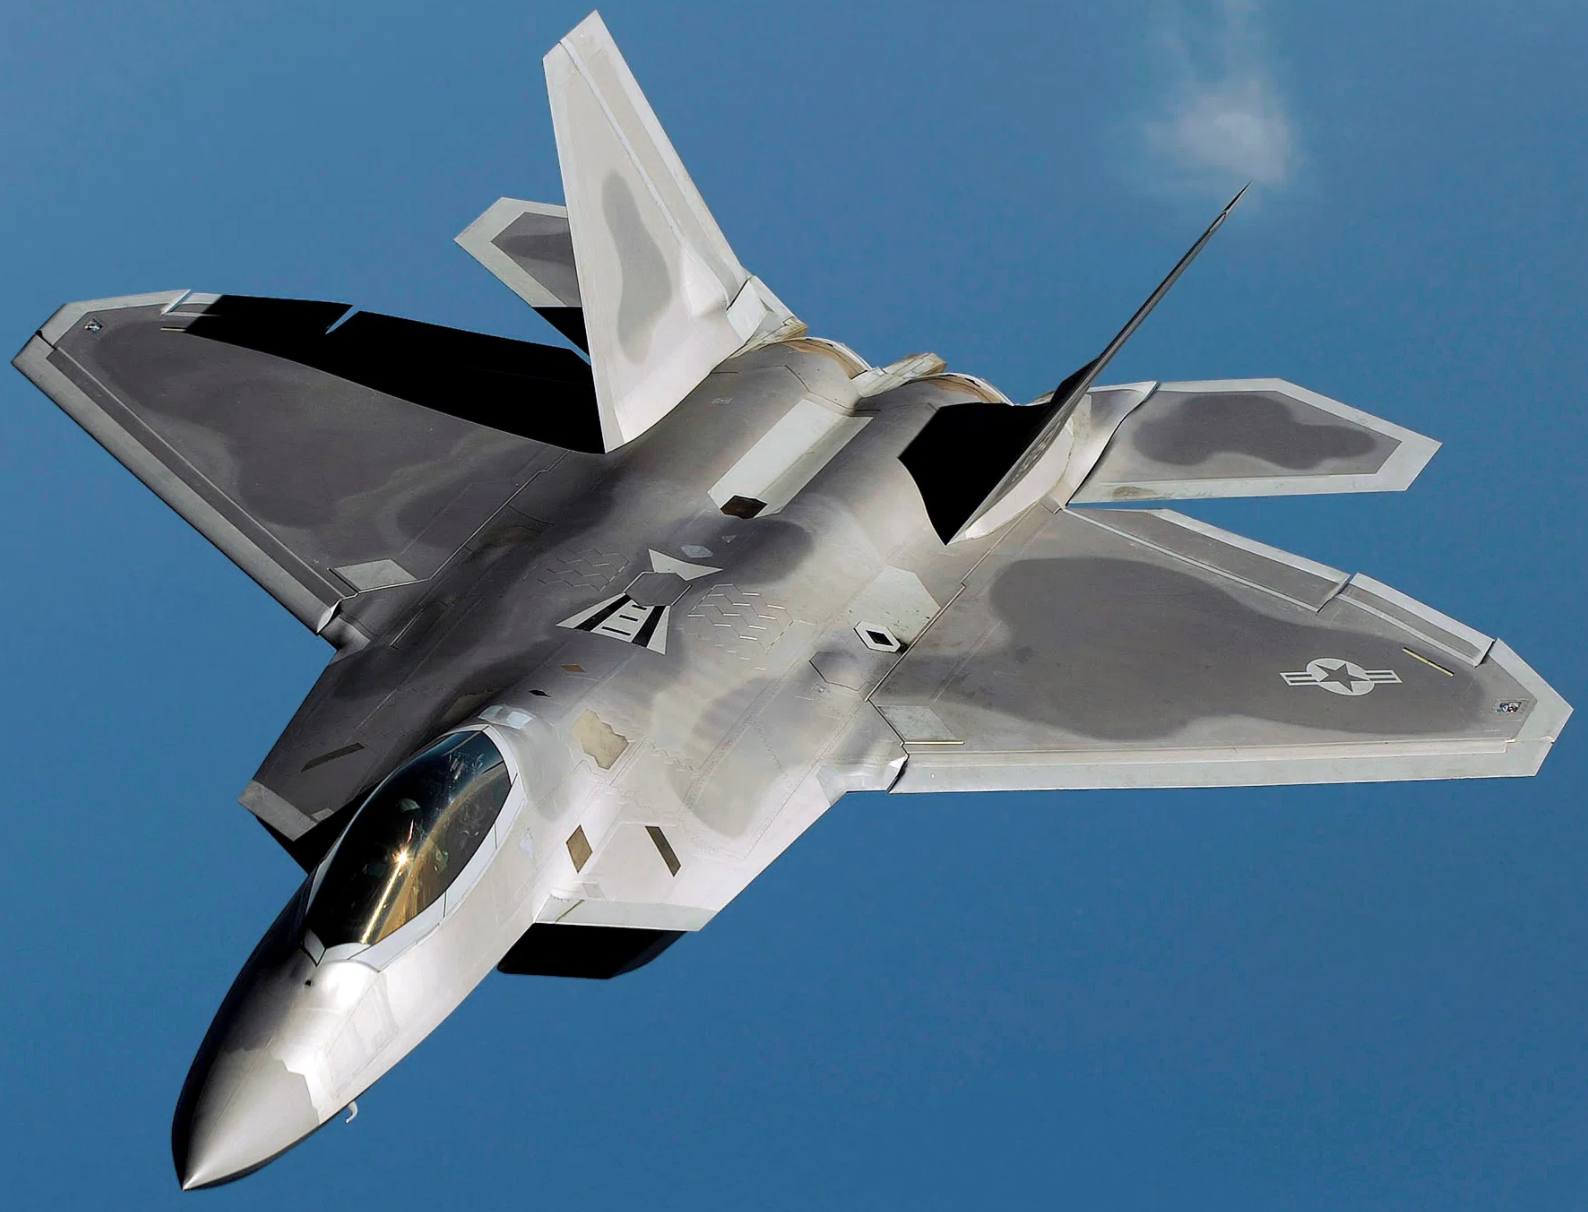 THE MYSTERY OF THE F-22S SCRAMBLED IN HAWAII HAS BEEN SOLVED